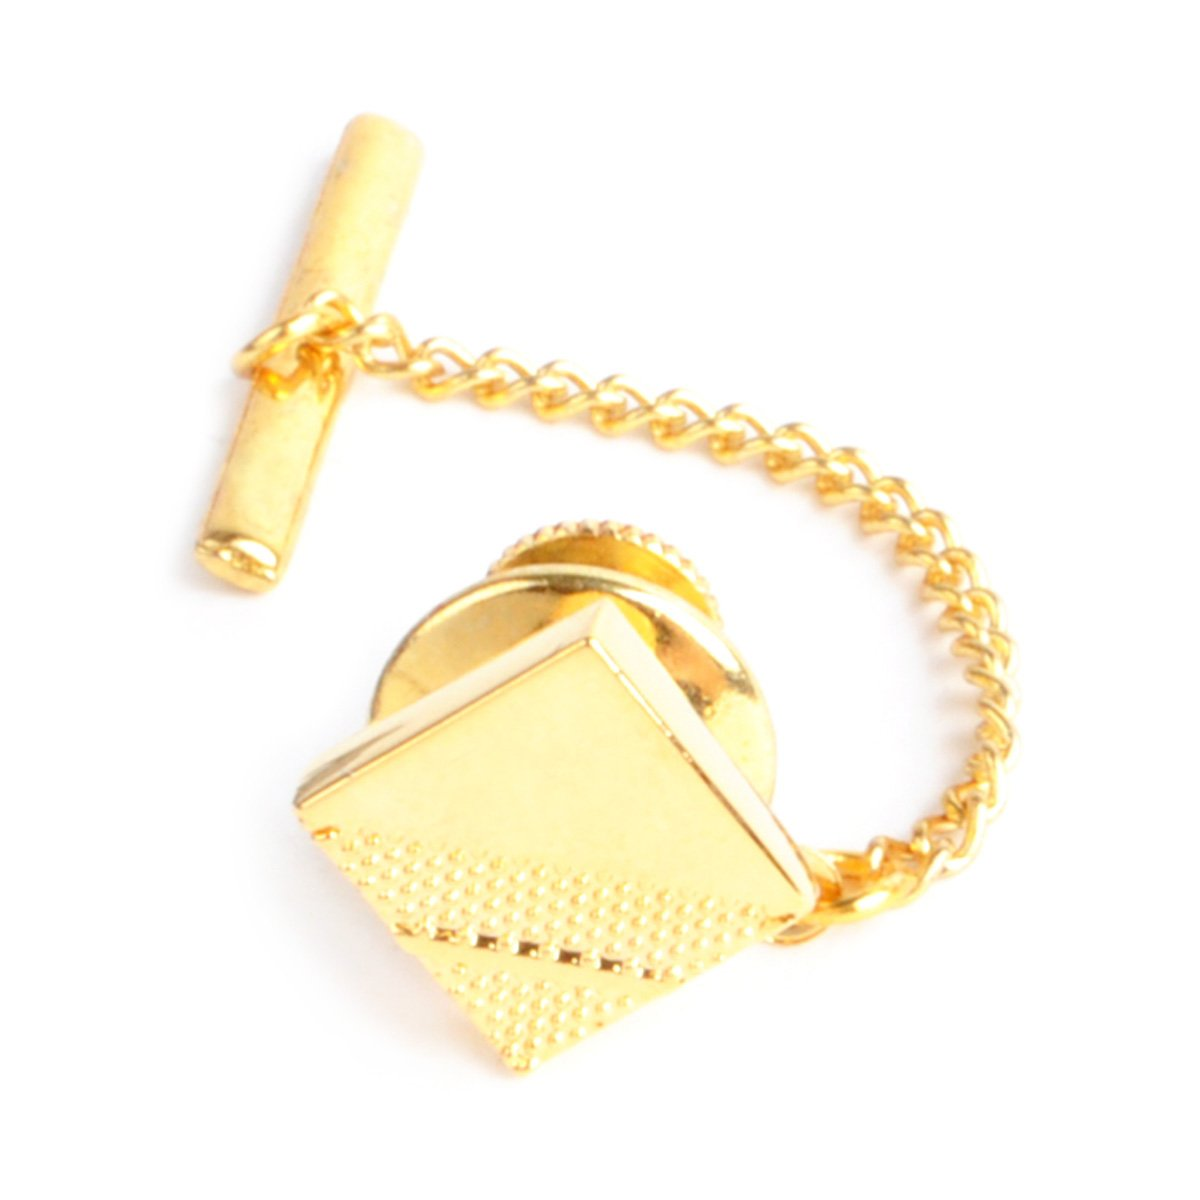 Square Textured Gold & Silver Tone Men's Tie Tack